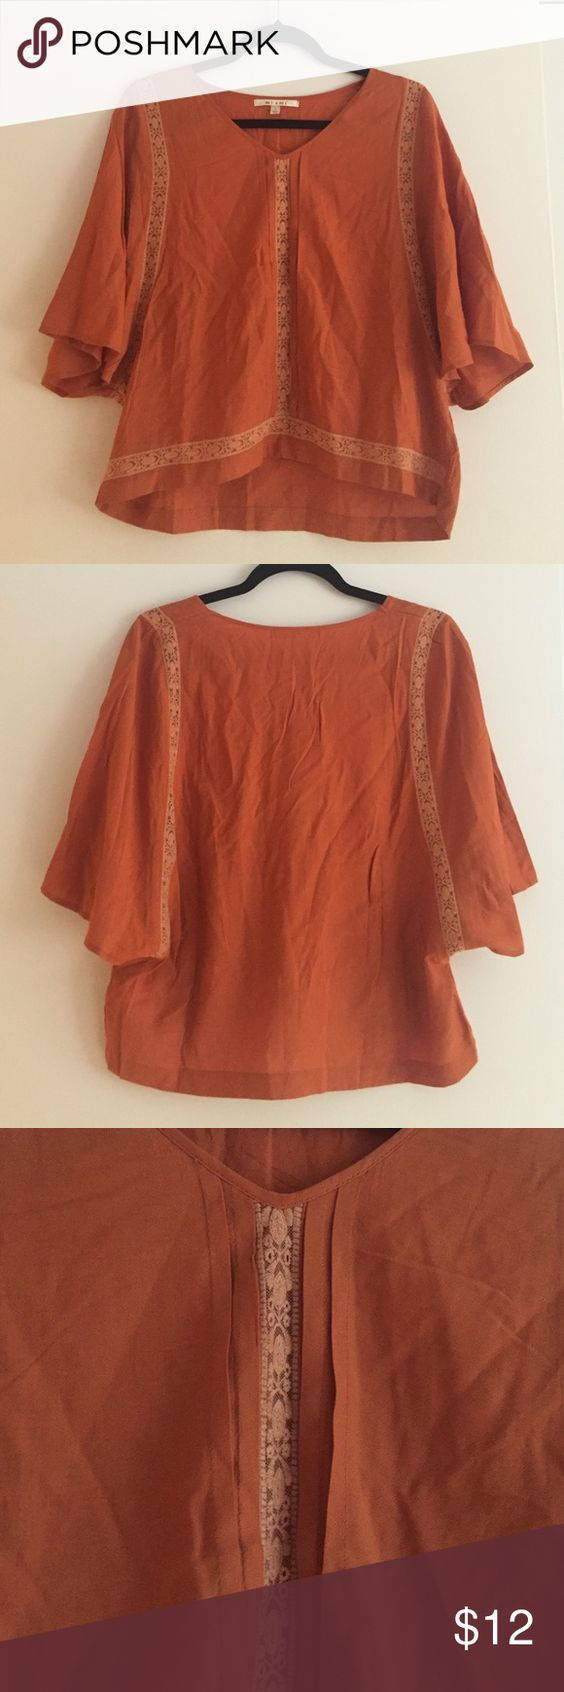 Burnt orange flowy top Originally from Francesca's (specific brand is Miami), in great condition. Fits loosely and is perfect for summer! Has lace-y details and pleated front. Francesca's Collections Tops Blouses